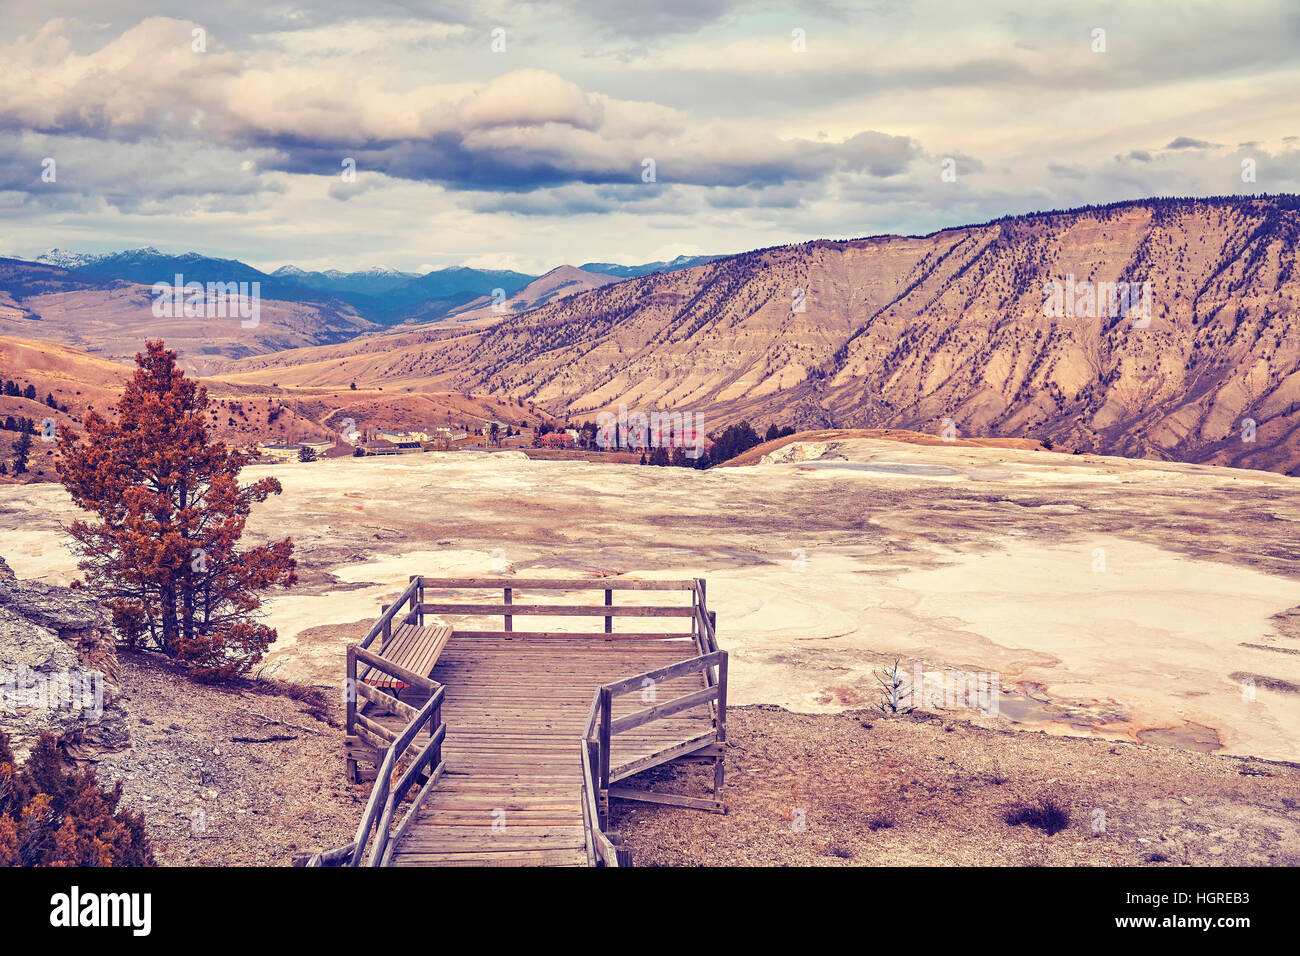 Color toned hot springs in Yellowstone National Park, Wyoming, USA. - Stock Image